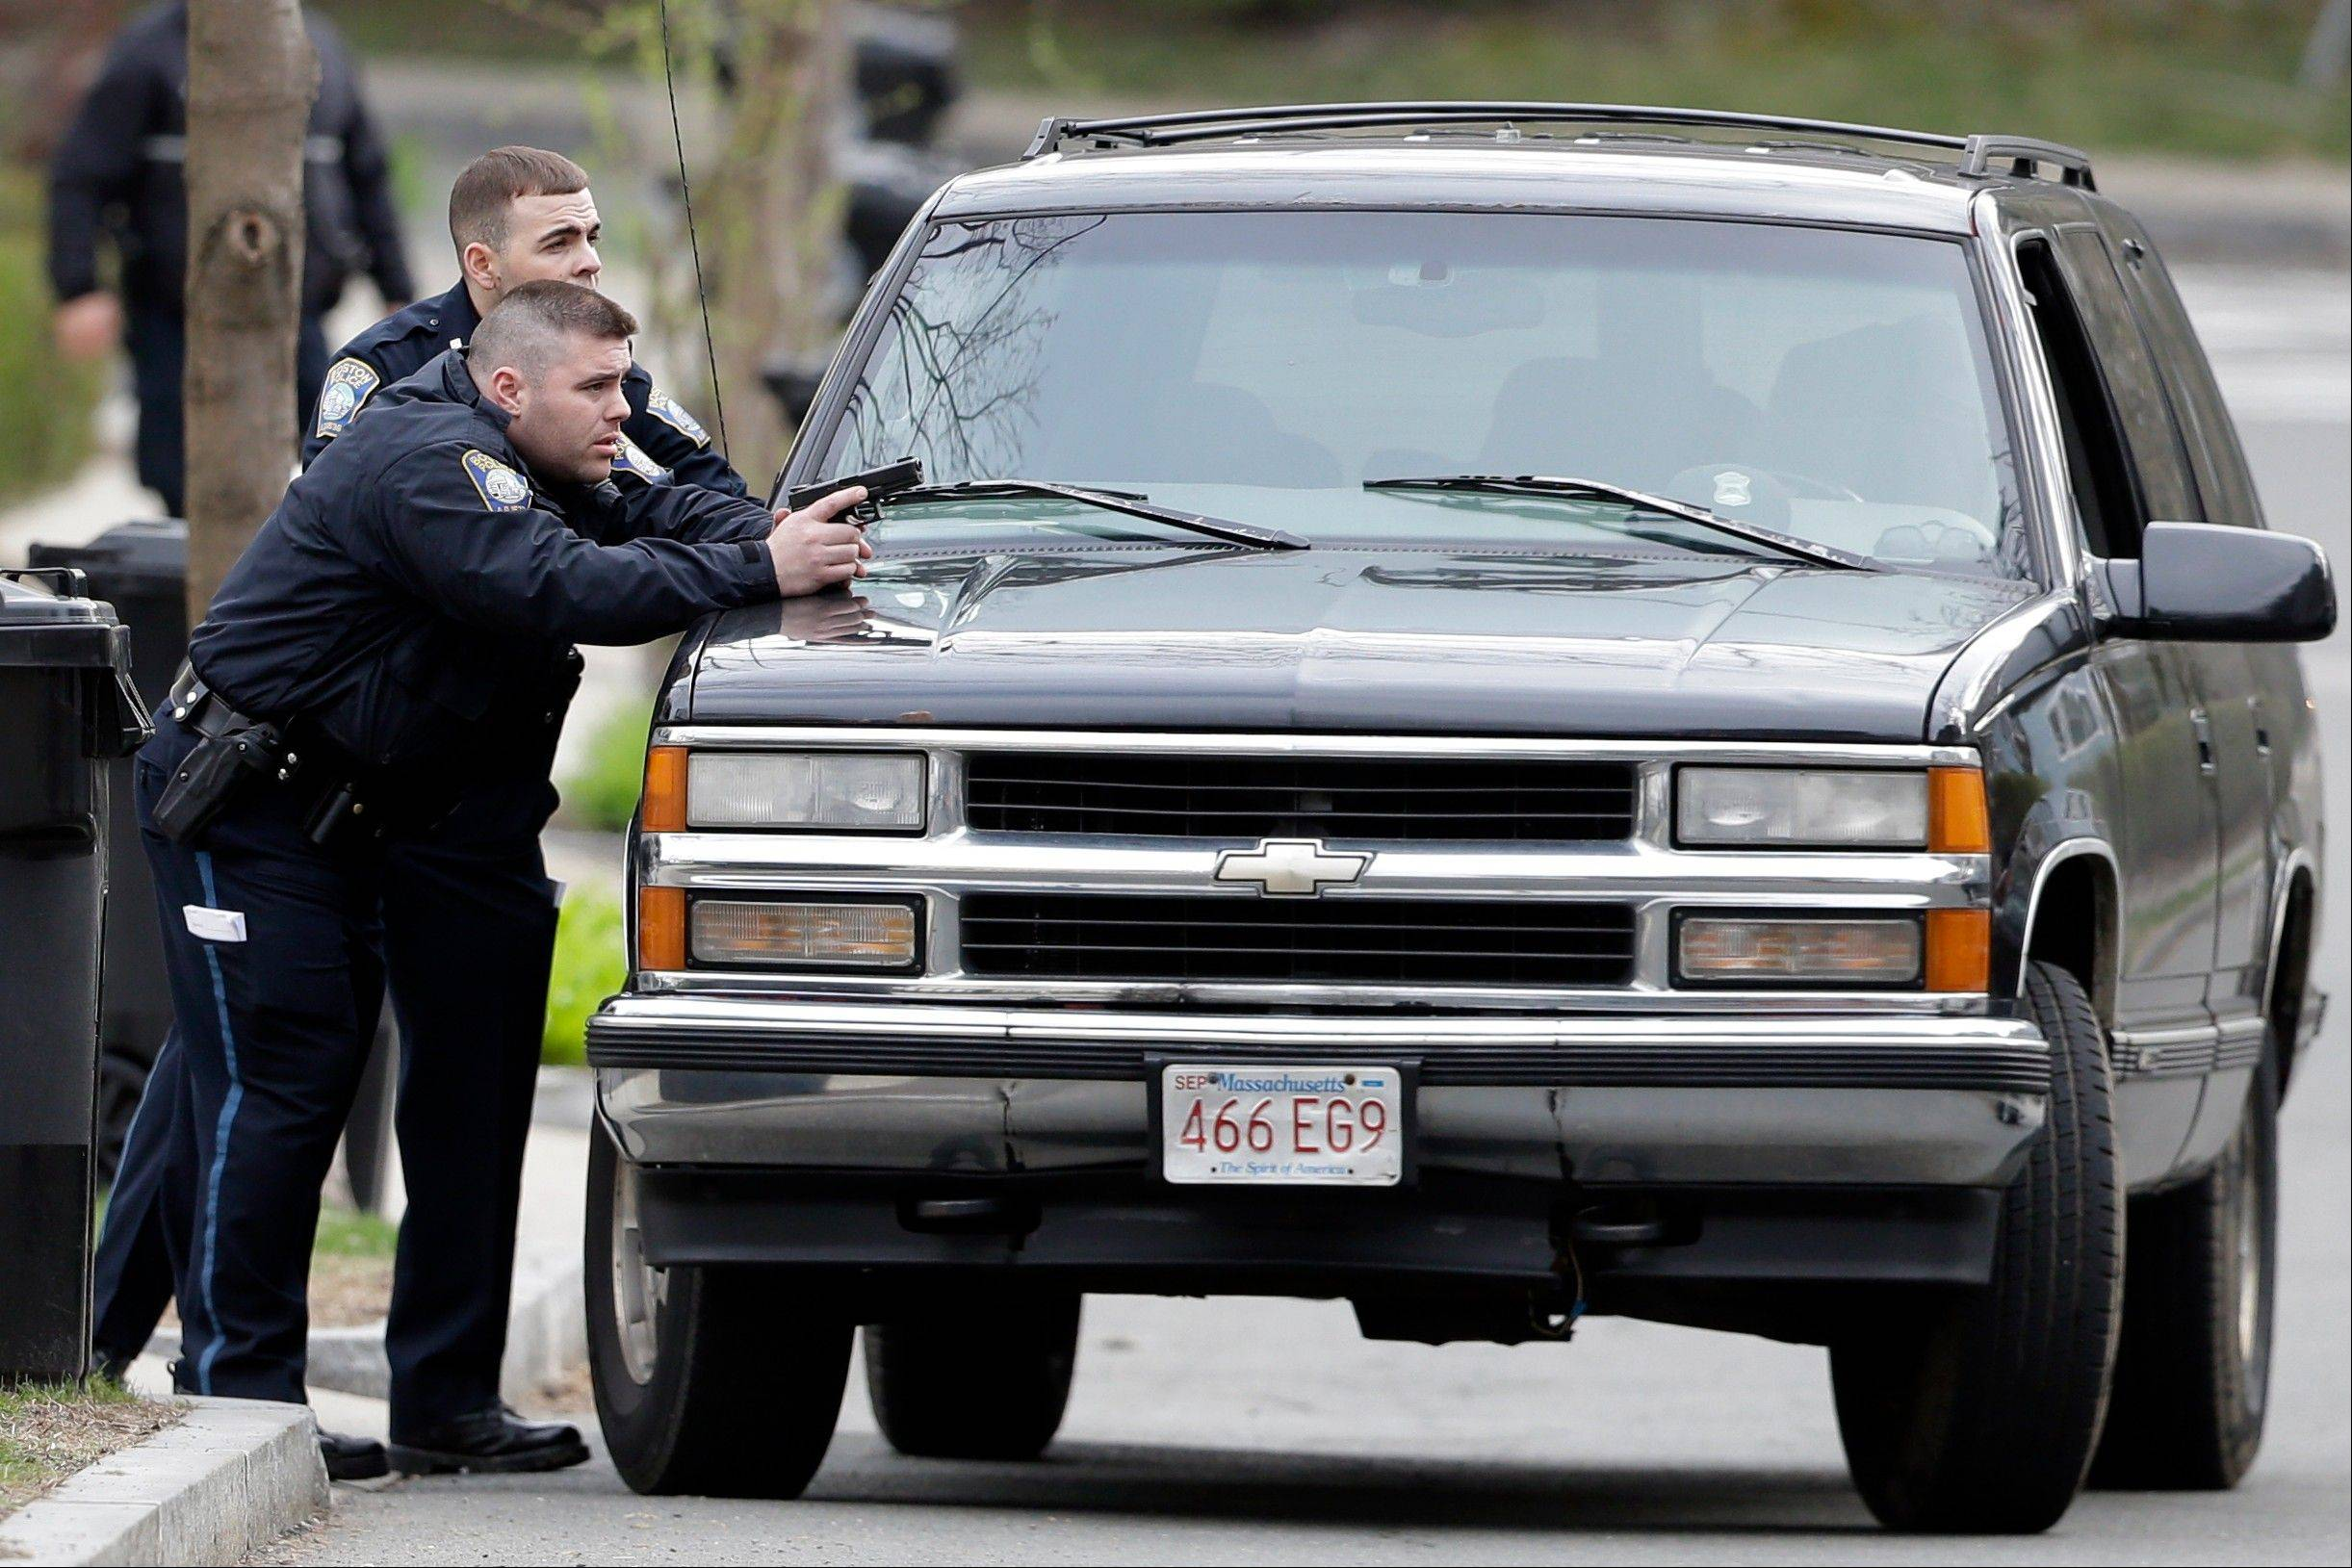 Police officers take cover as they conduct a search for a suspect in the Boston Marathon bombings, Friday, April 19, 2013, in Watertown, Mass. The two suspects in the Boston Marathon bombing killed an MIT police officer and hurled explosives at police in a car chase and gunbattle overnight that left one of them dead and his brother on the loose, authorities said Friday as thousands of officers swarmed the streets in a manhunt that all but paralyzed the Boston area.